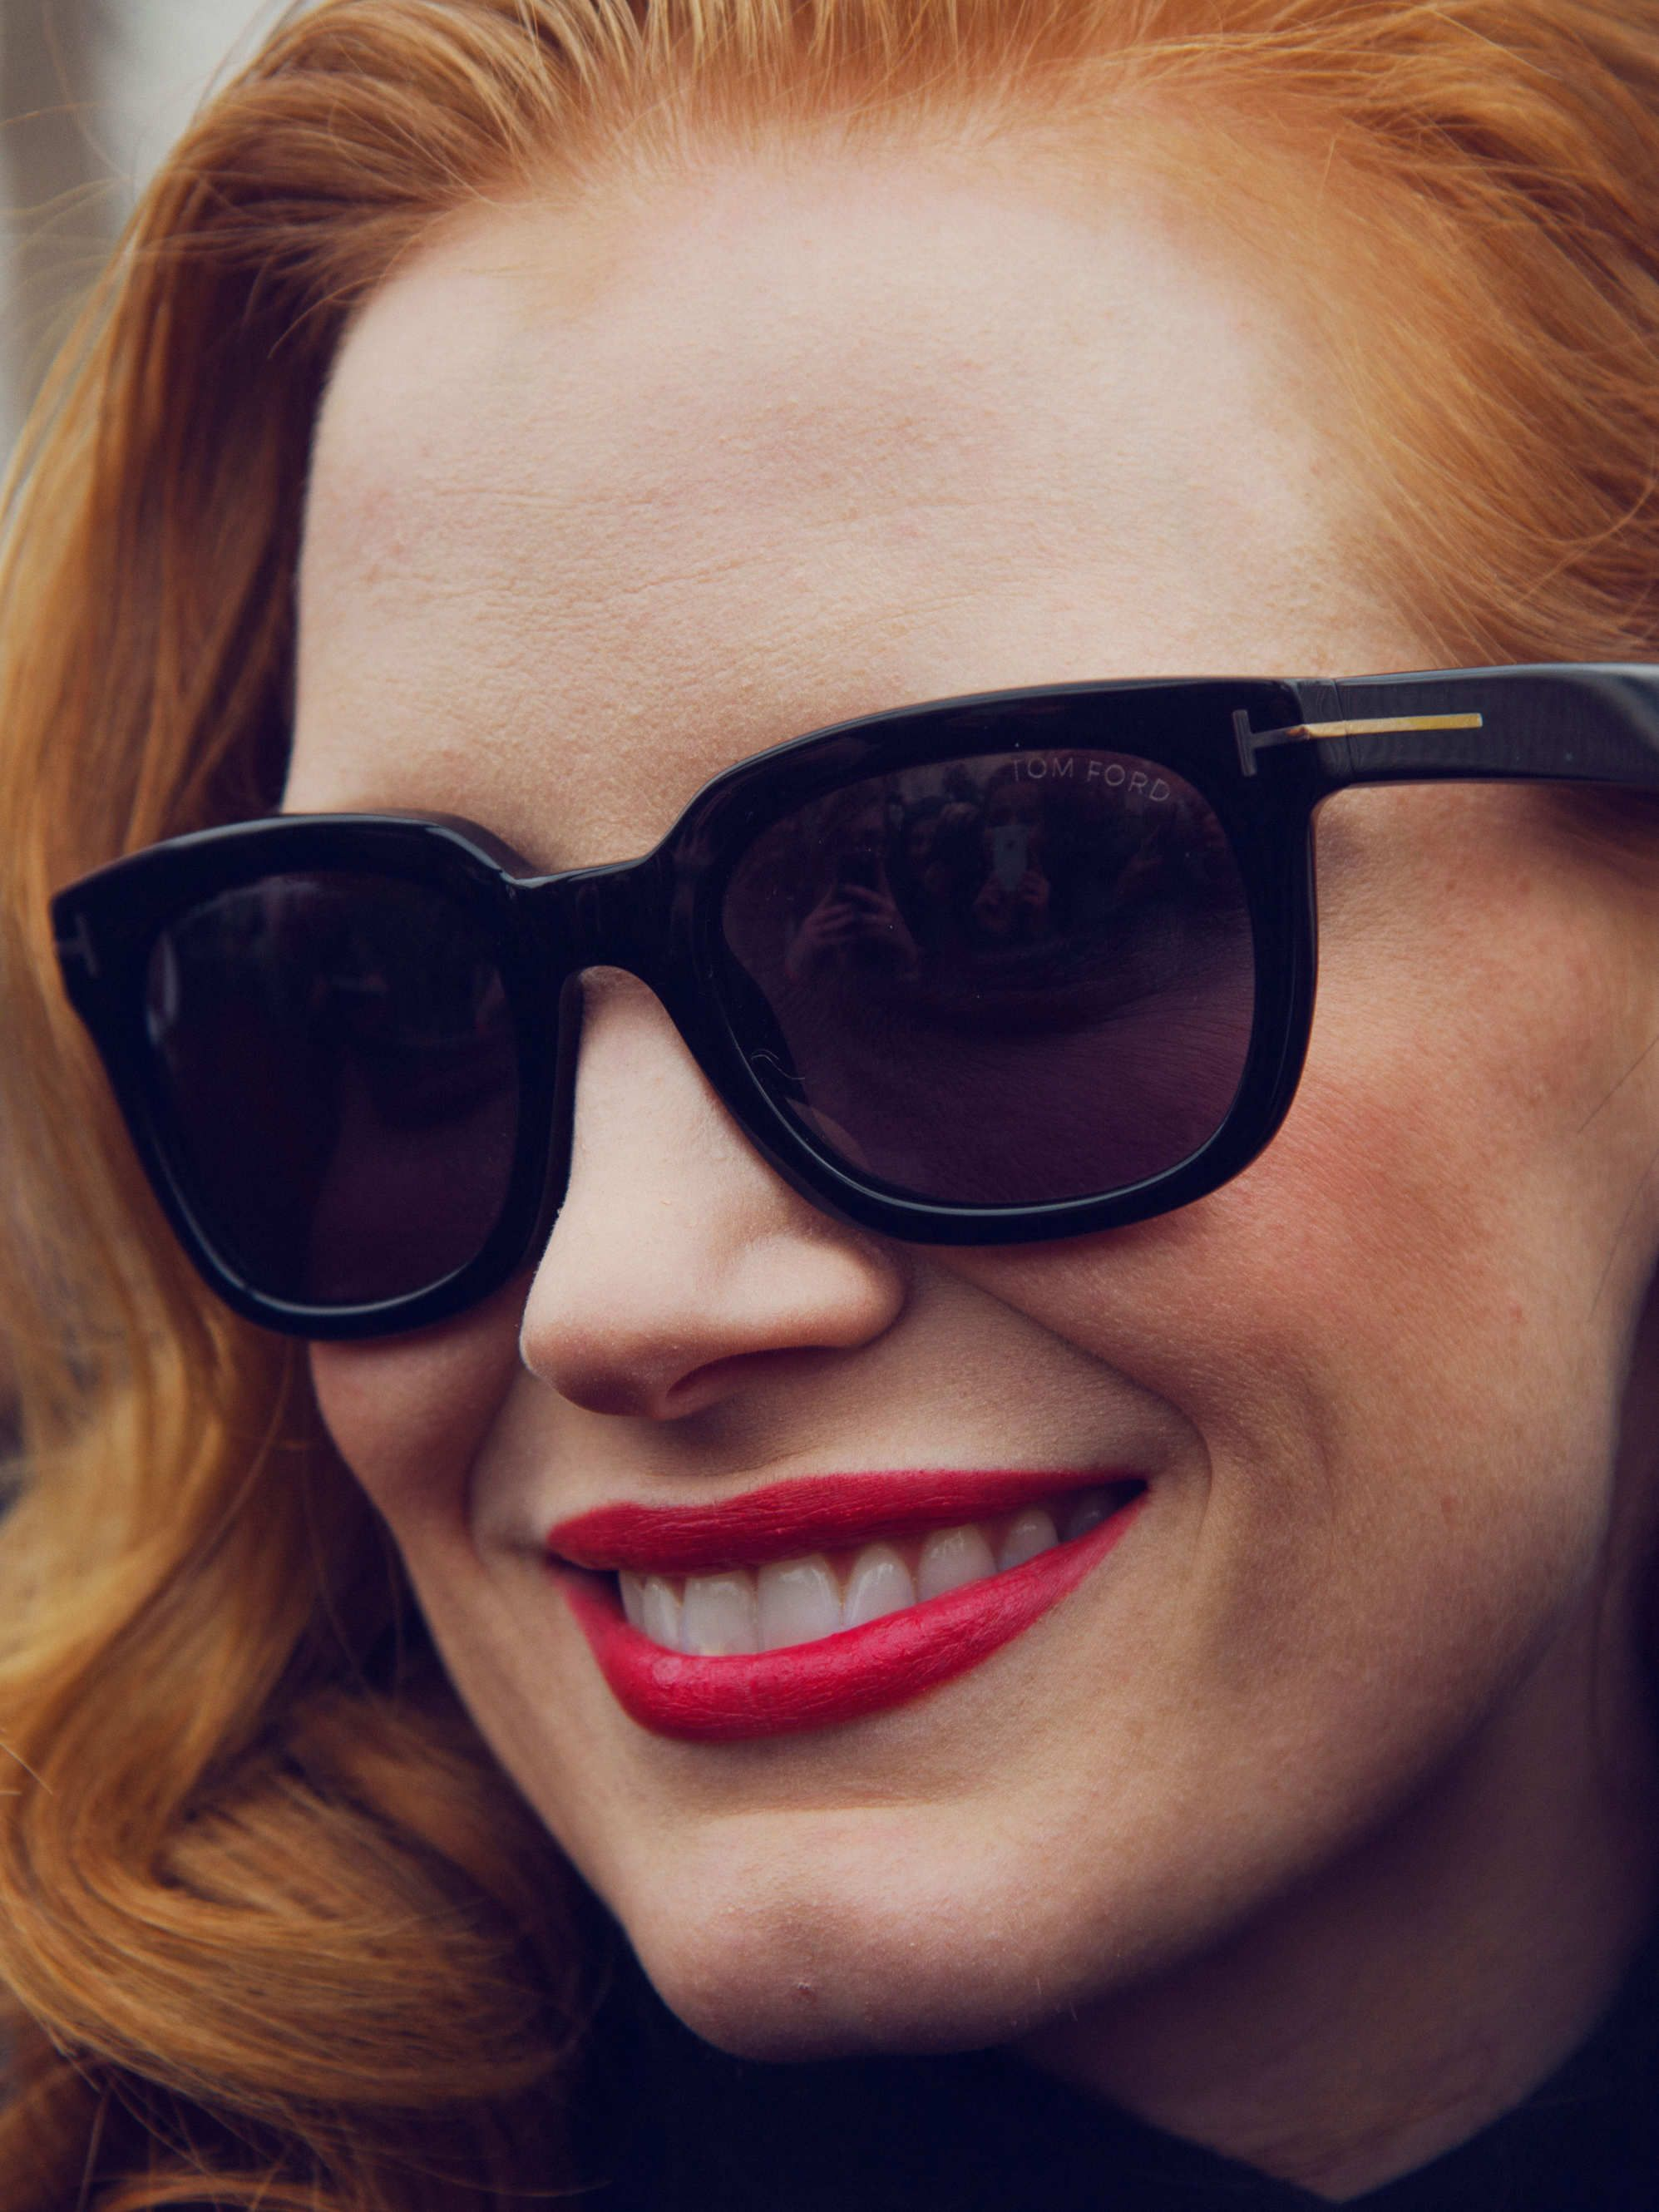 10e27629a63 These Tom Ford Campbell sunnies are perfection! So classic!